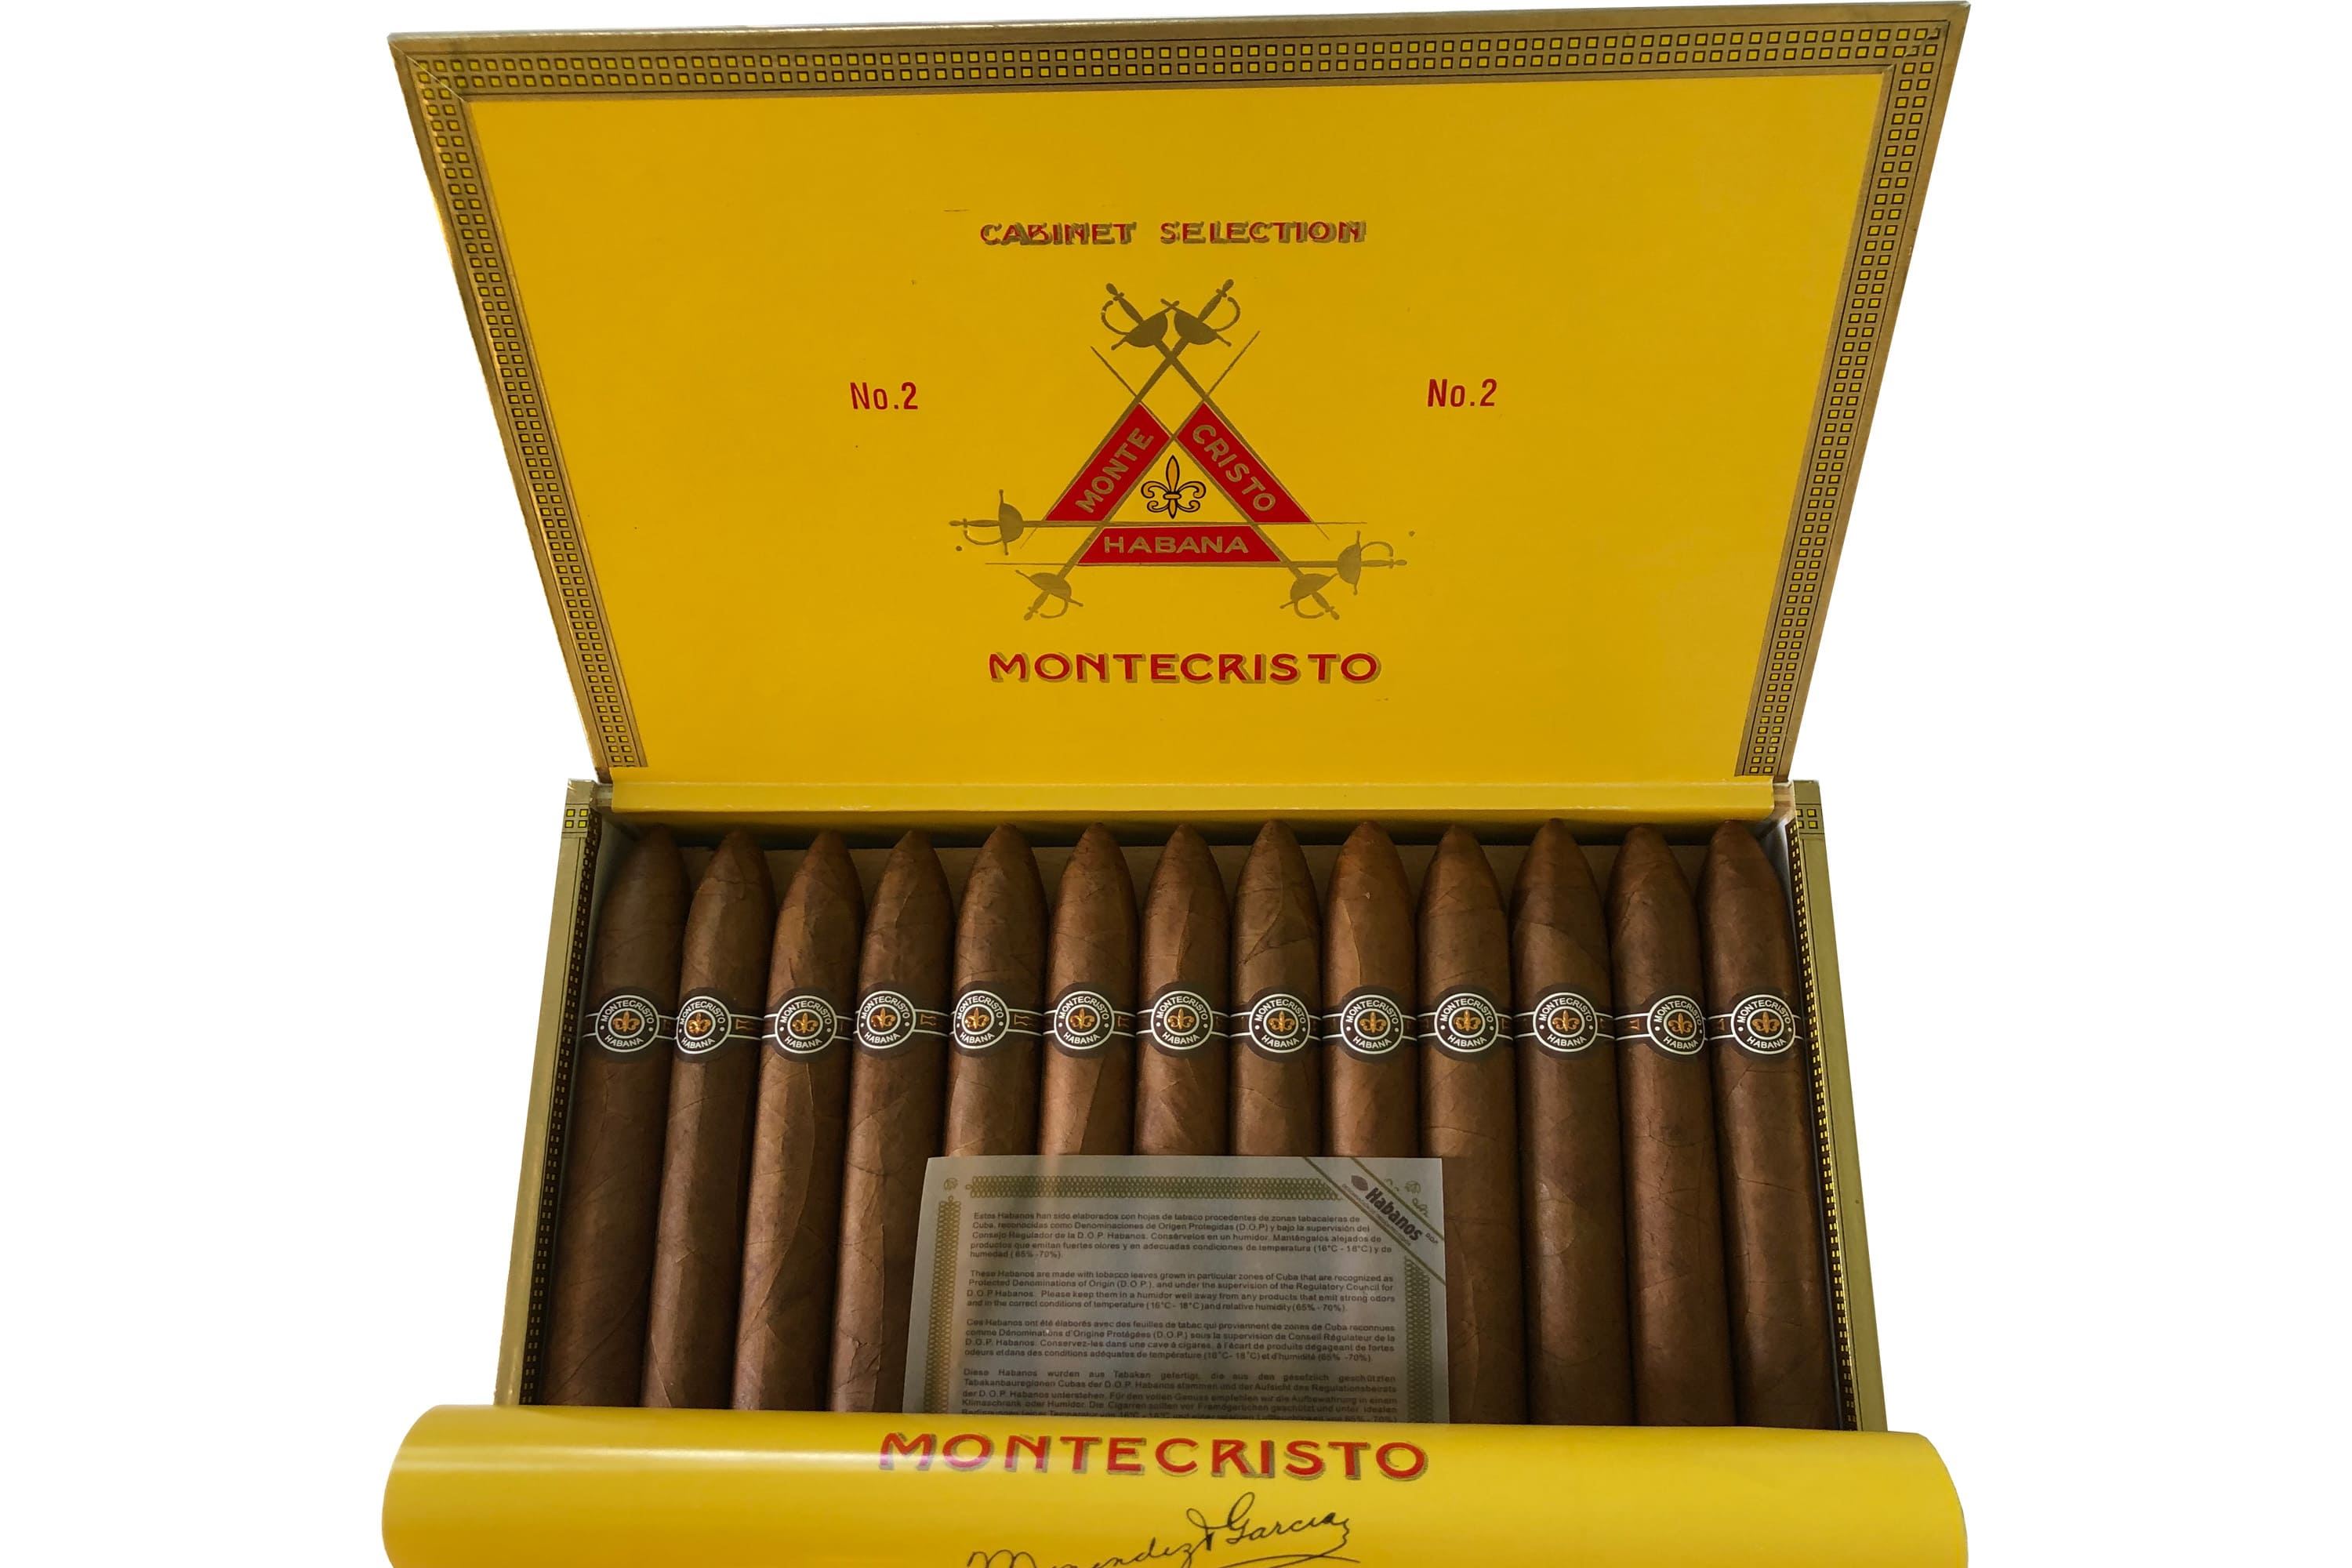 montecristo no 2 new box 1 Classic Shop